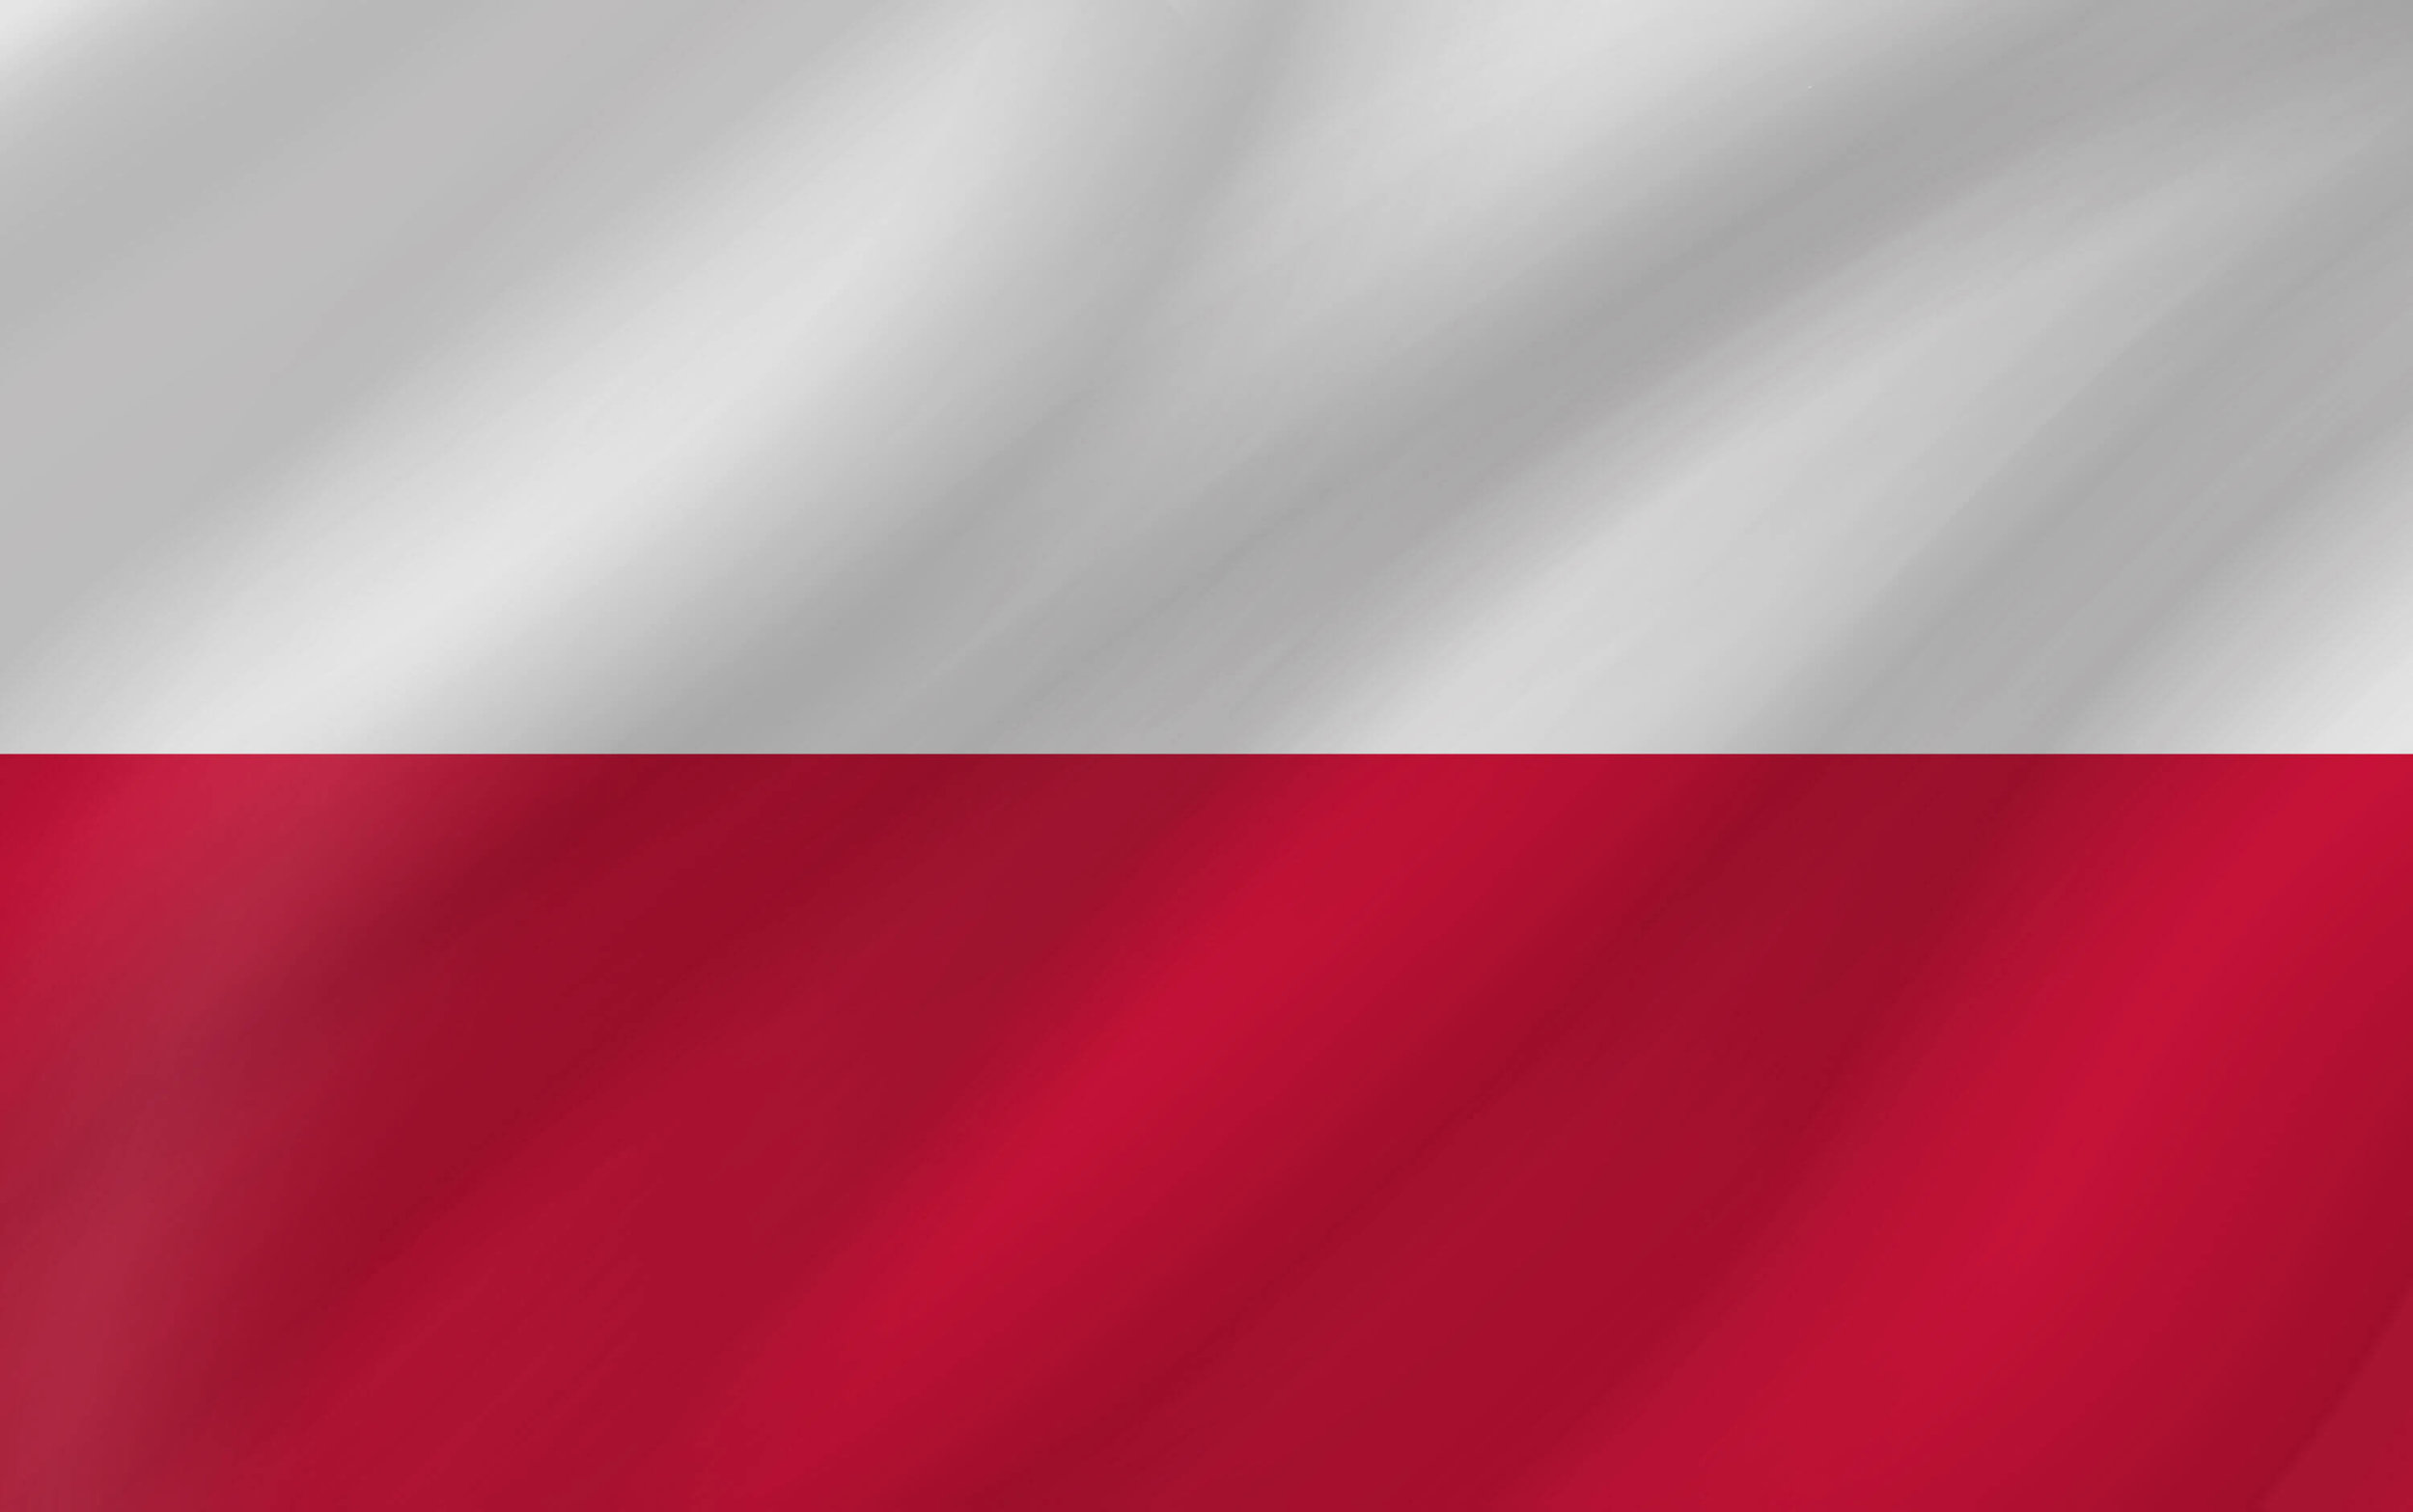 Poland - Cochlear Implant cost